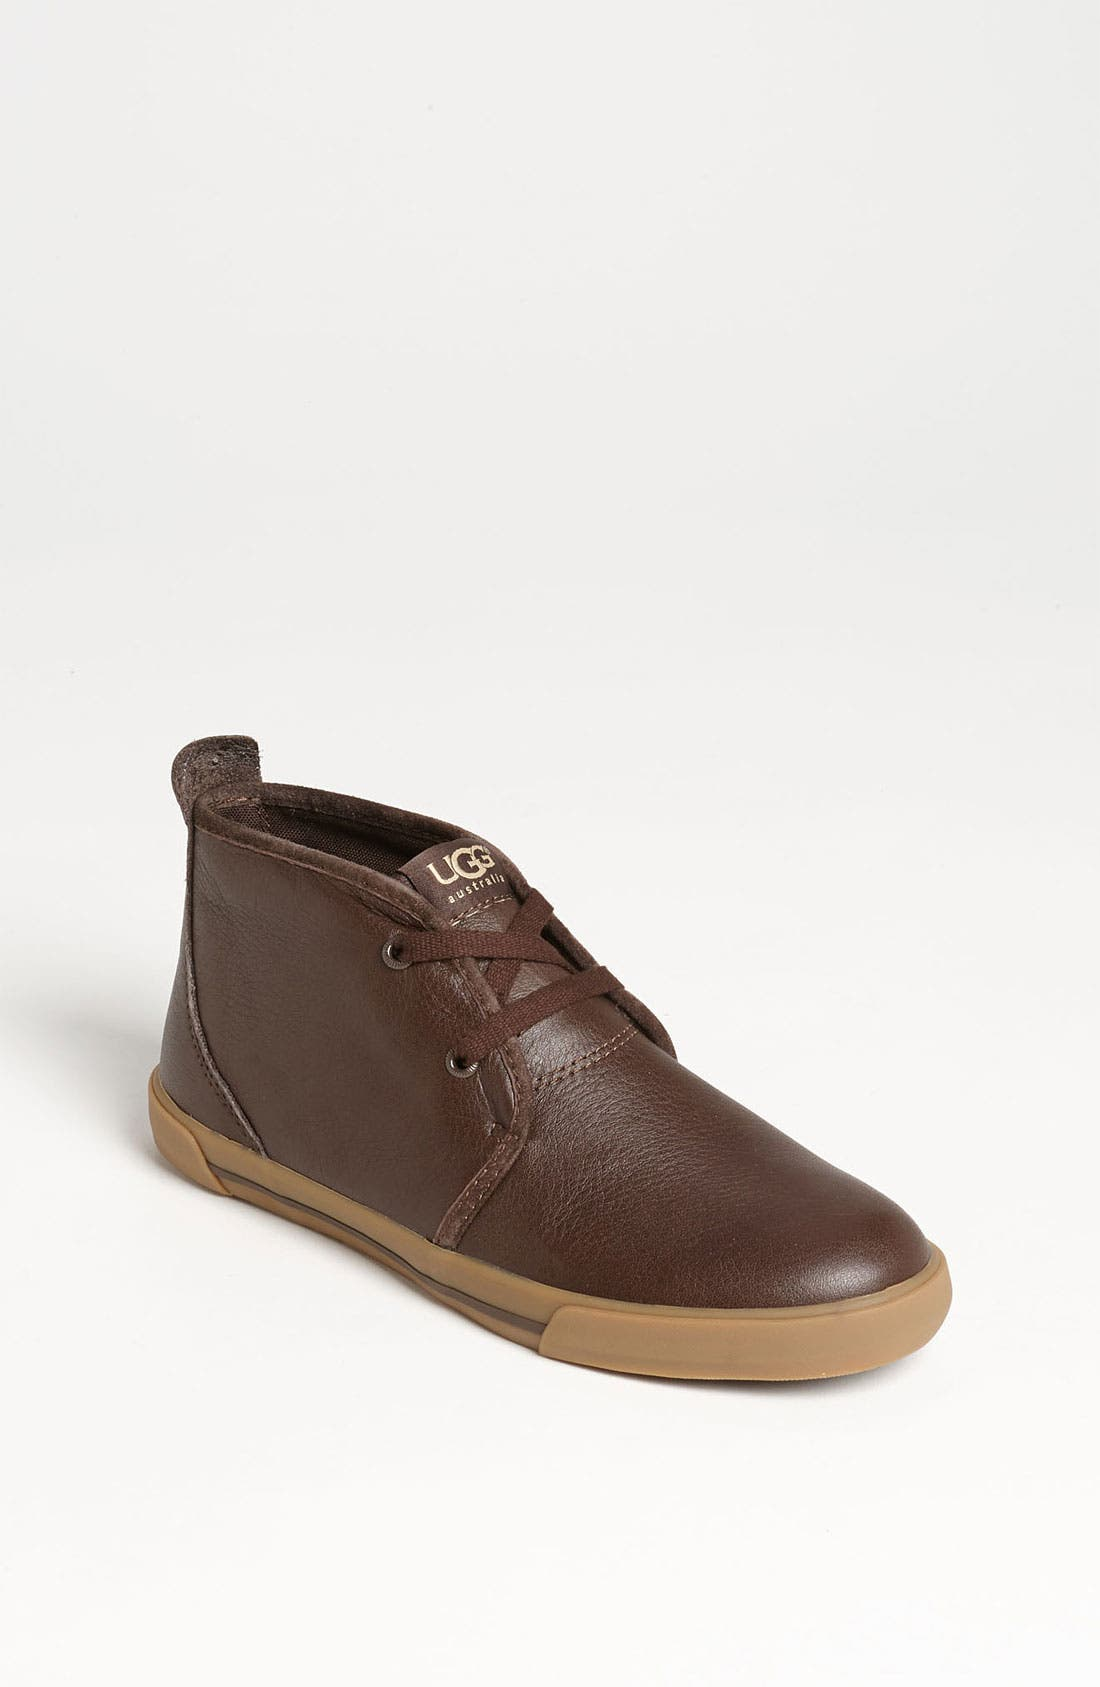 Main Image - UGG® Australia 'Brockman' Sneaker (Toddler, Little Kid & Big Kid)